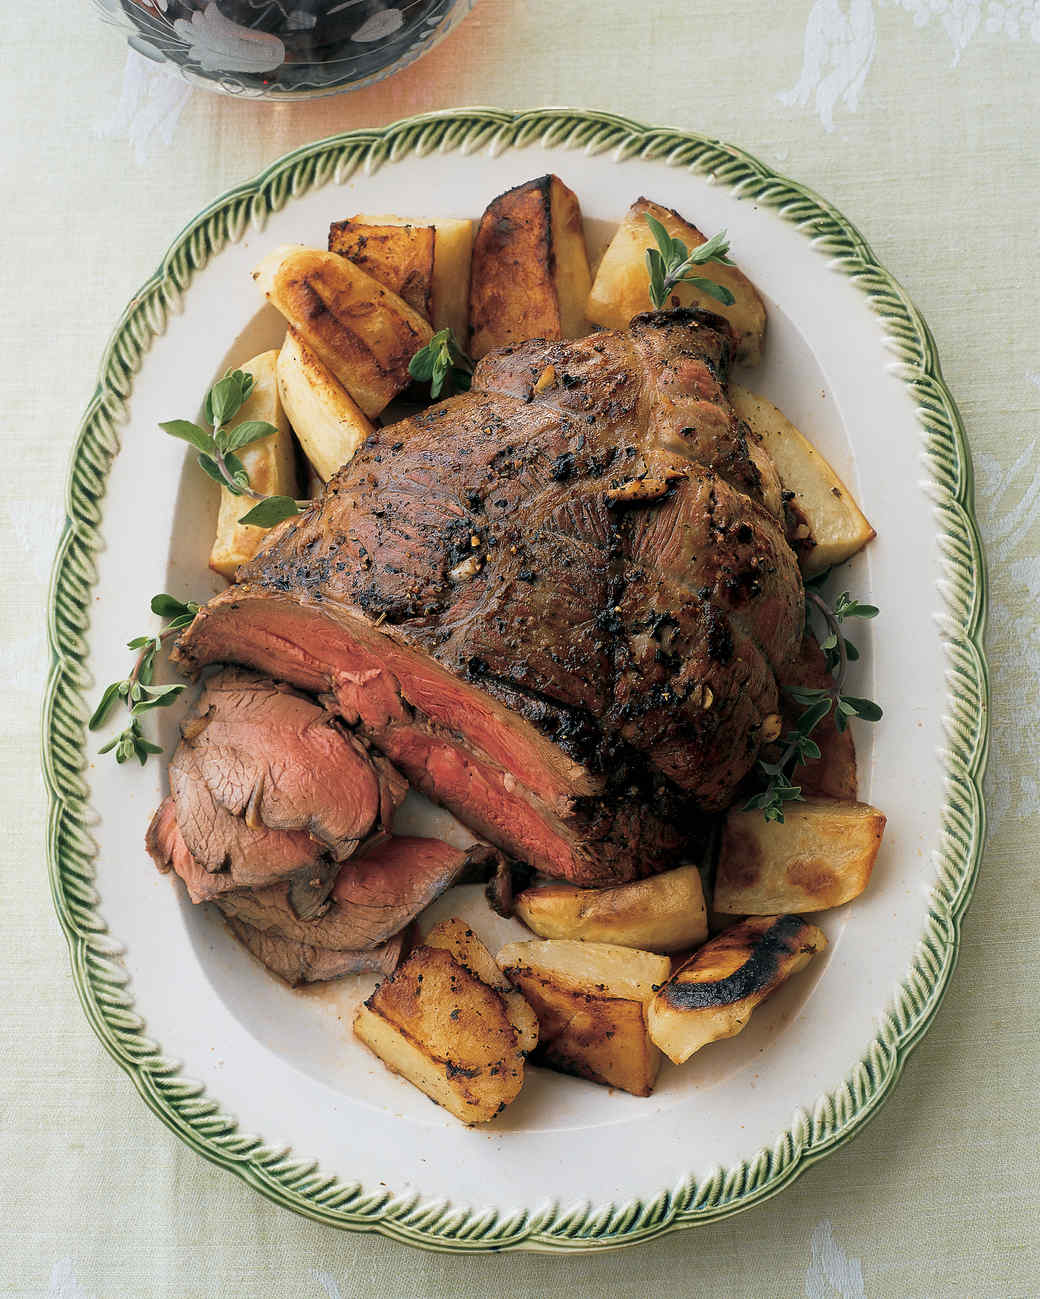 Roast Boneless Leg of Lamb with Potatoes, Lemon, and Marjoram